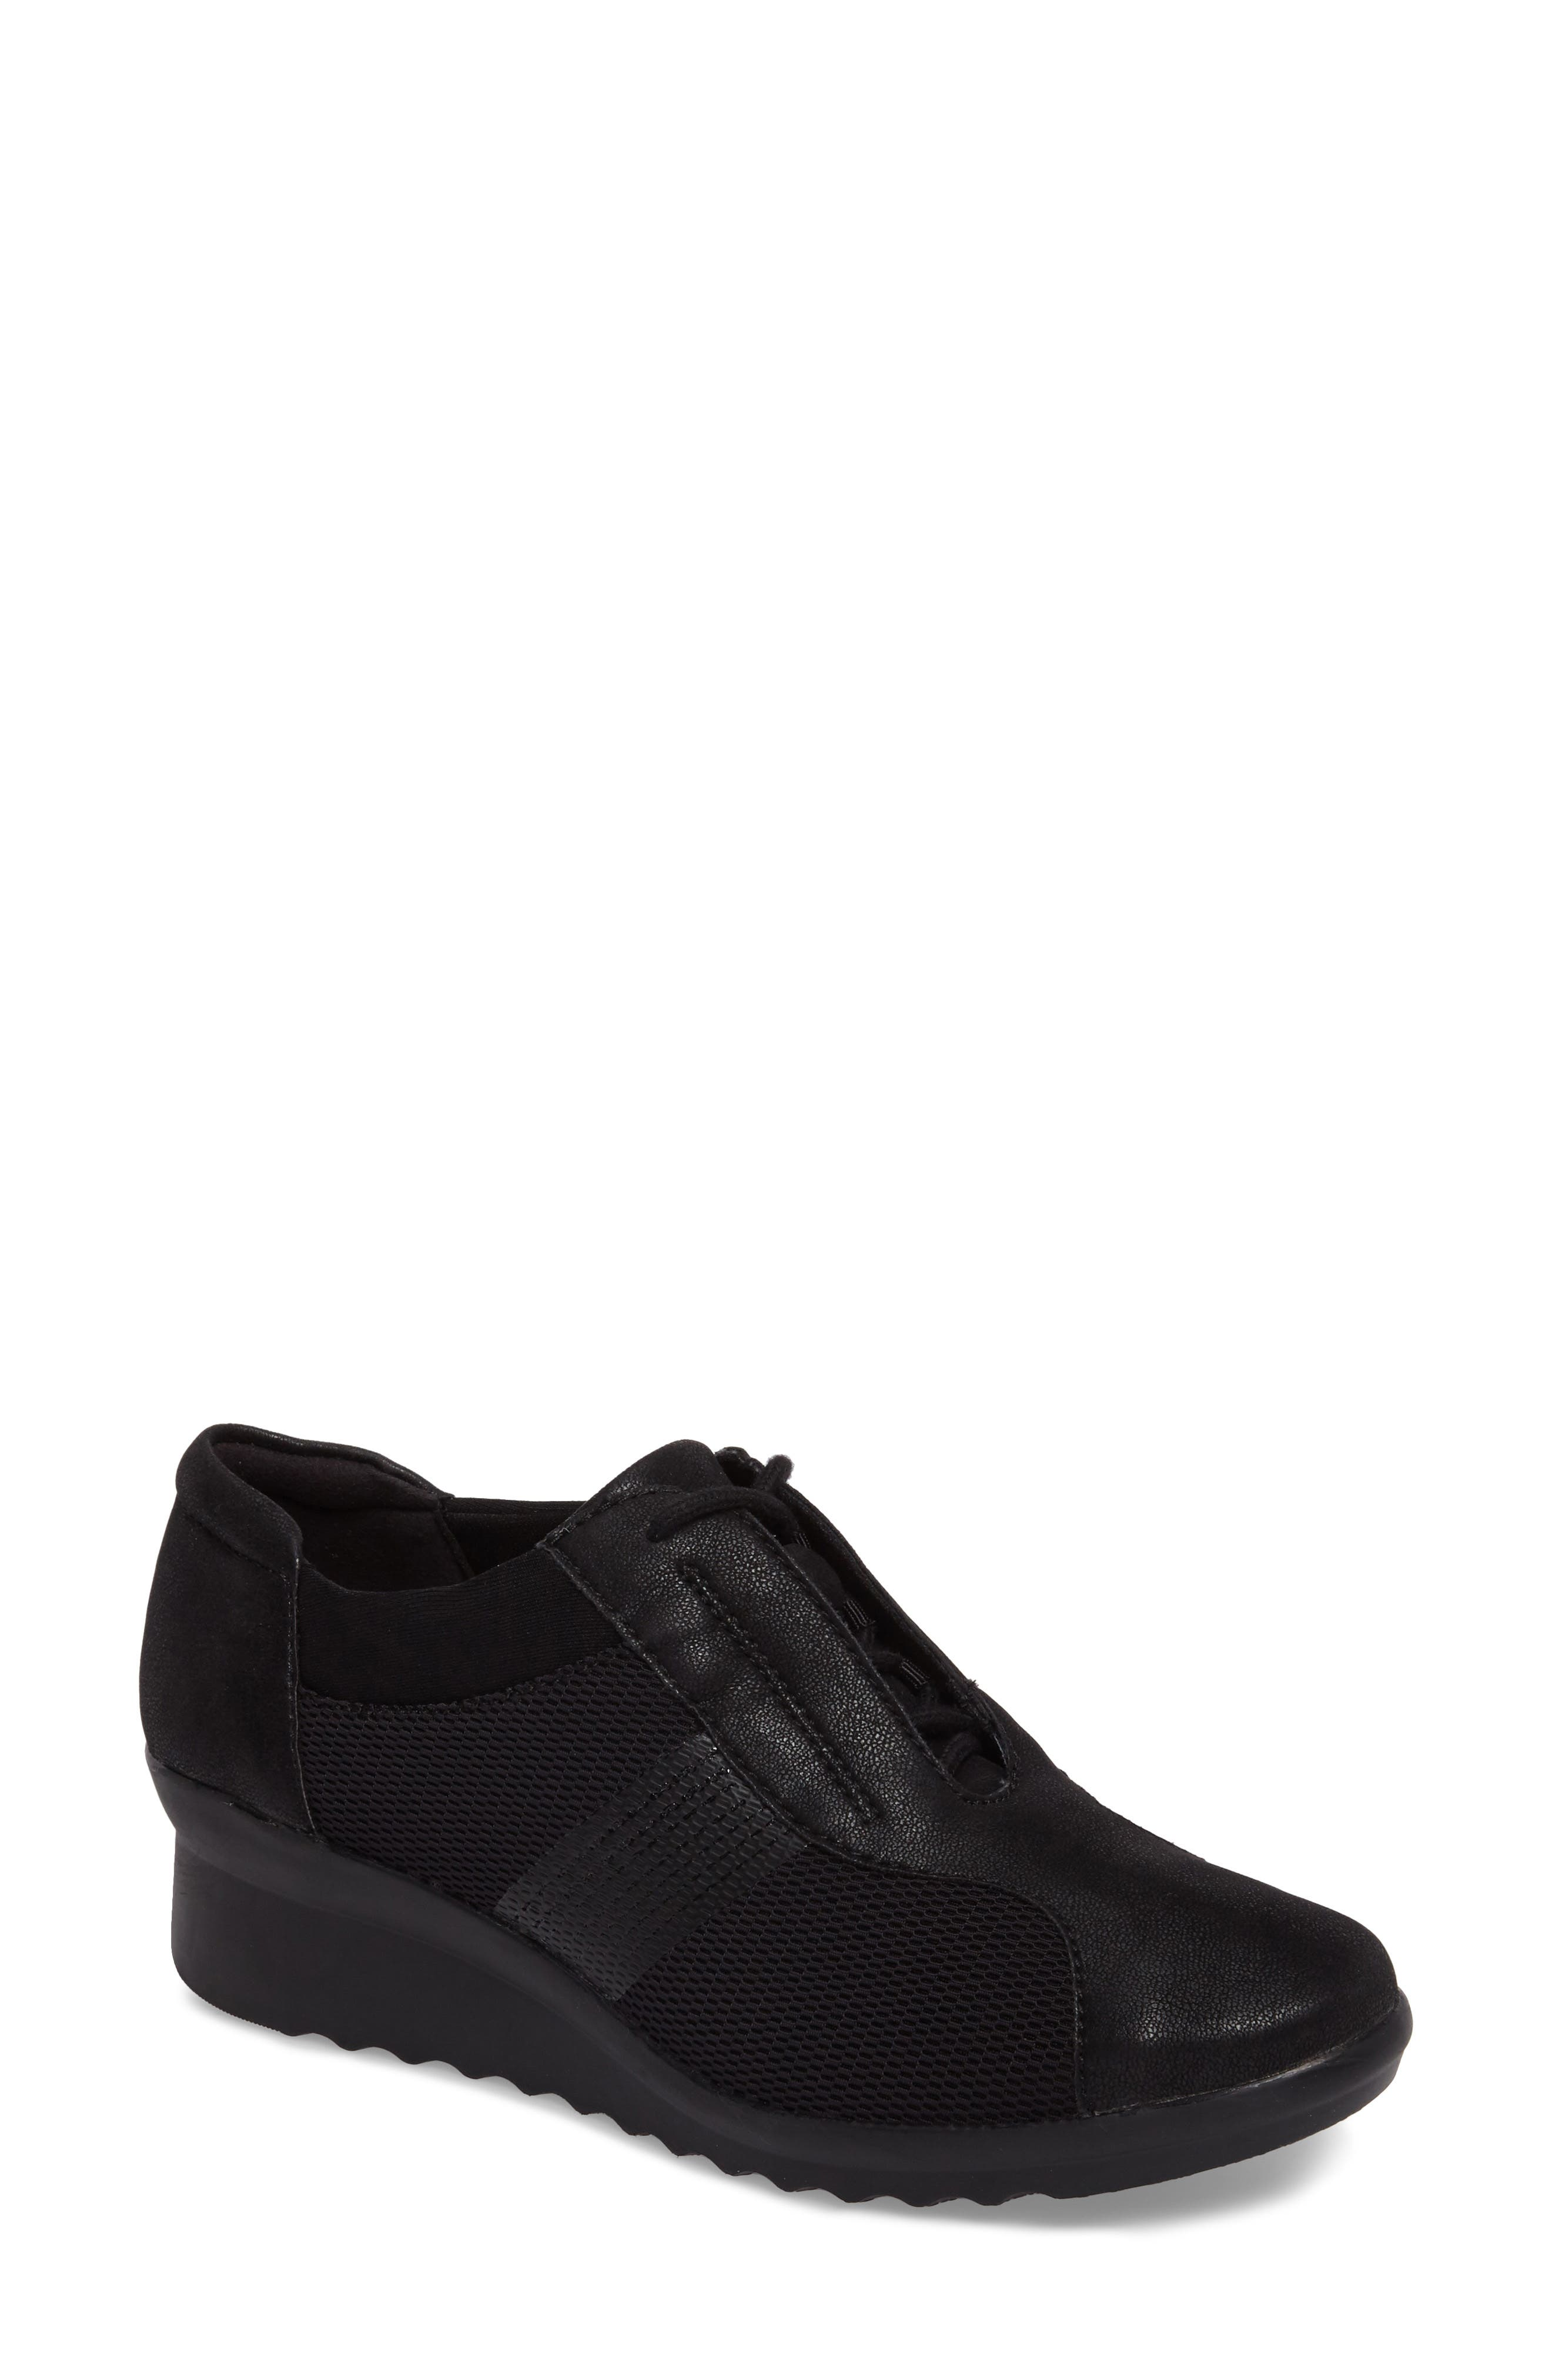 Caddell Fly Sneaker,                         Main,                         color, Black Fabric